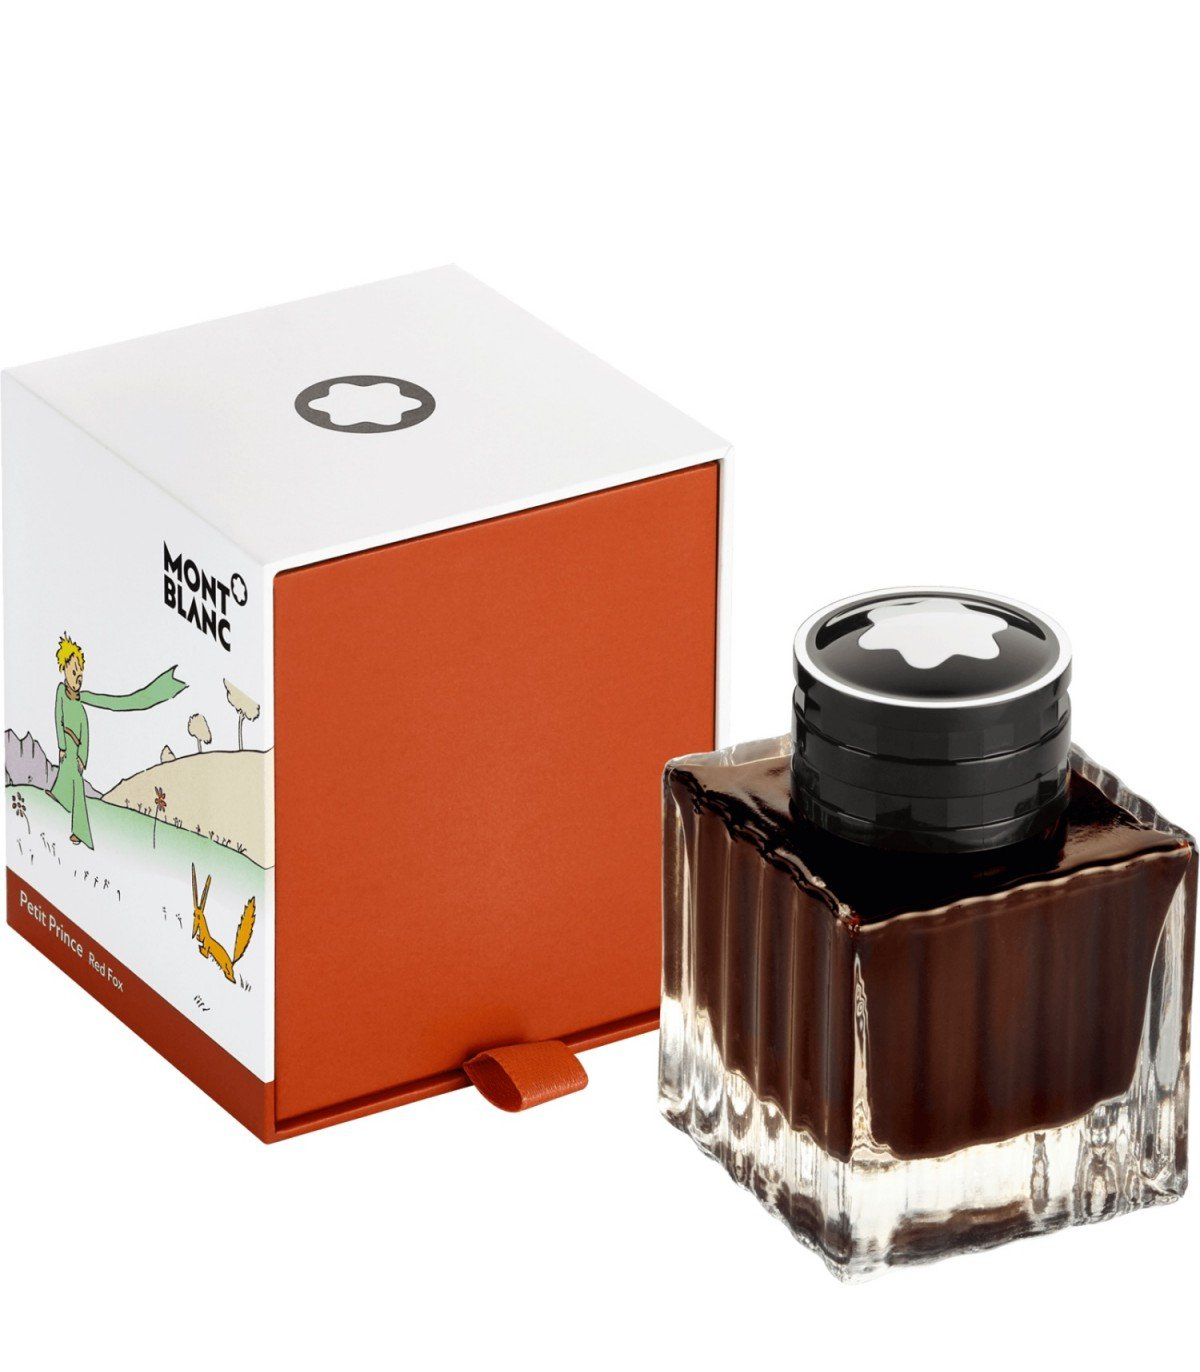 Montblanc Le Petit Prince & Fox Ink Bottle 50ml by MONTBLANC (Image #1)